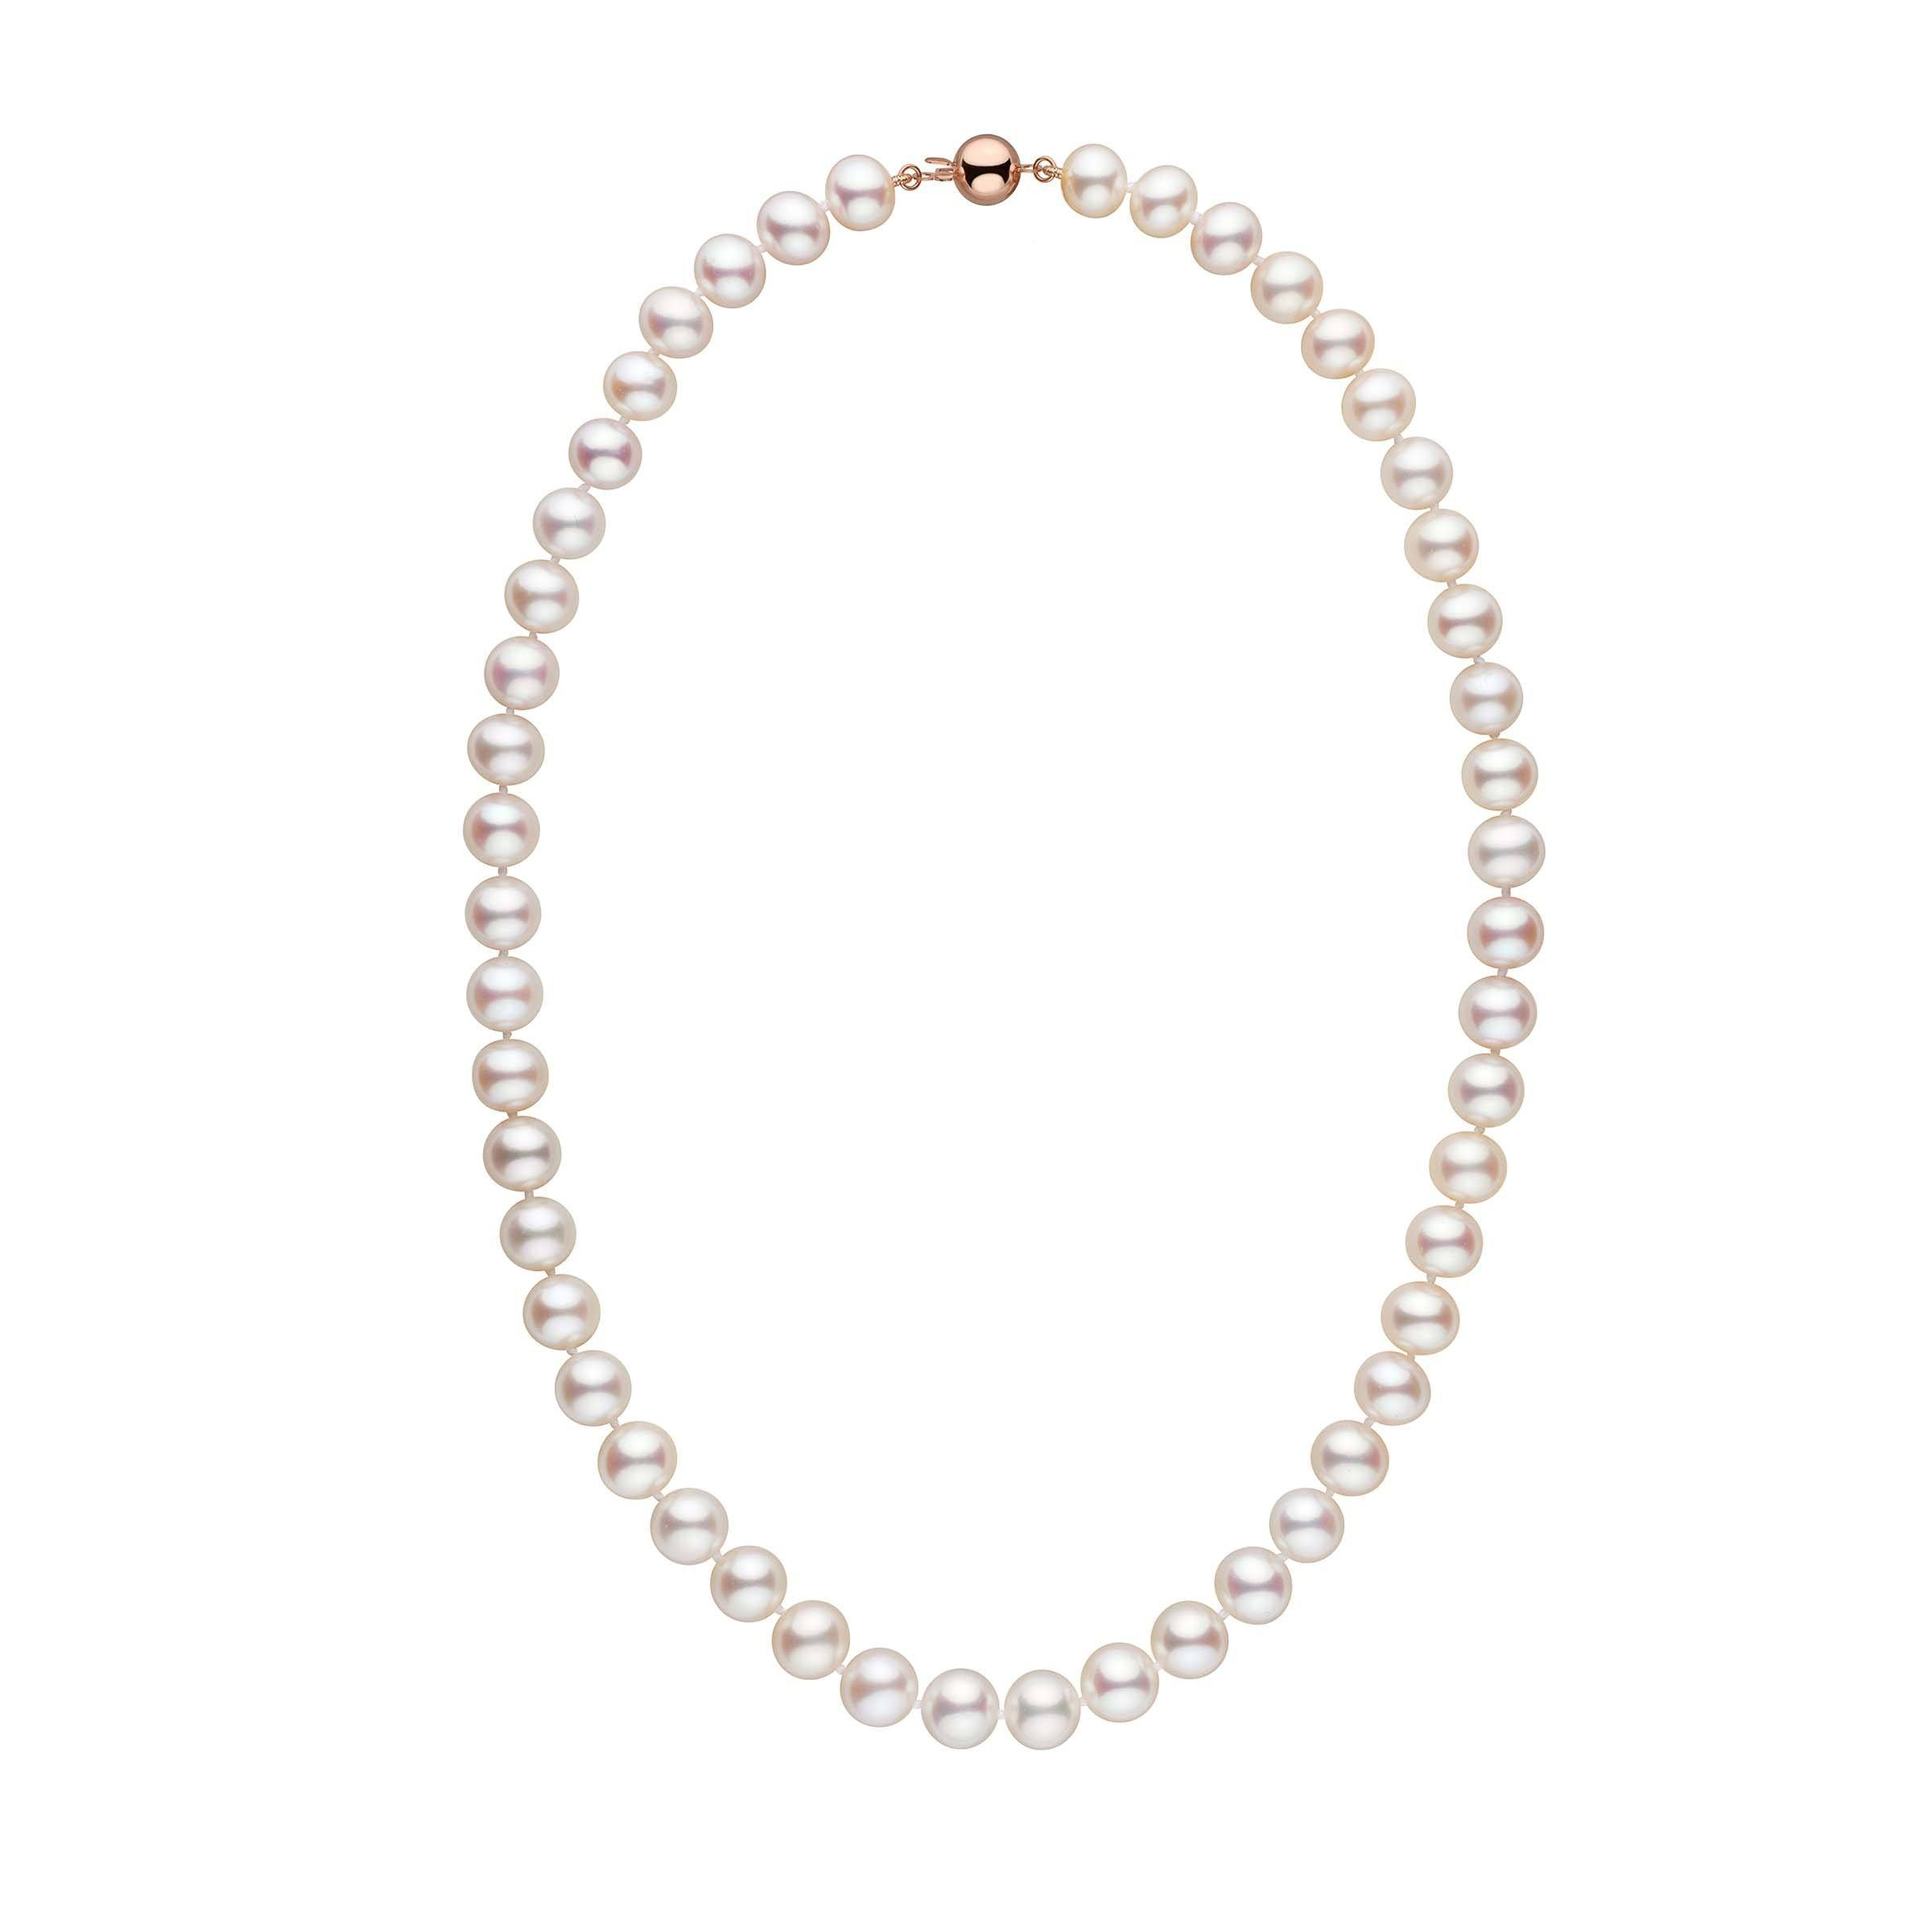 8.5-9.0 mm 18 Inch White Freshadama Freshwater Pearl Necklace